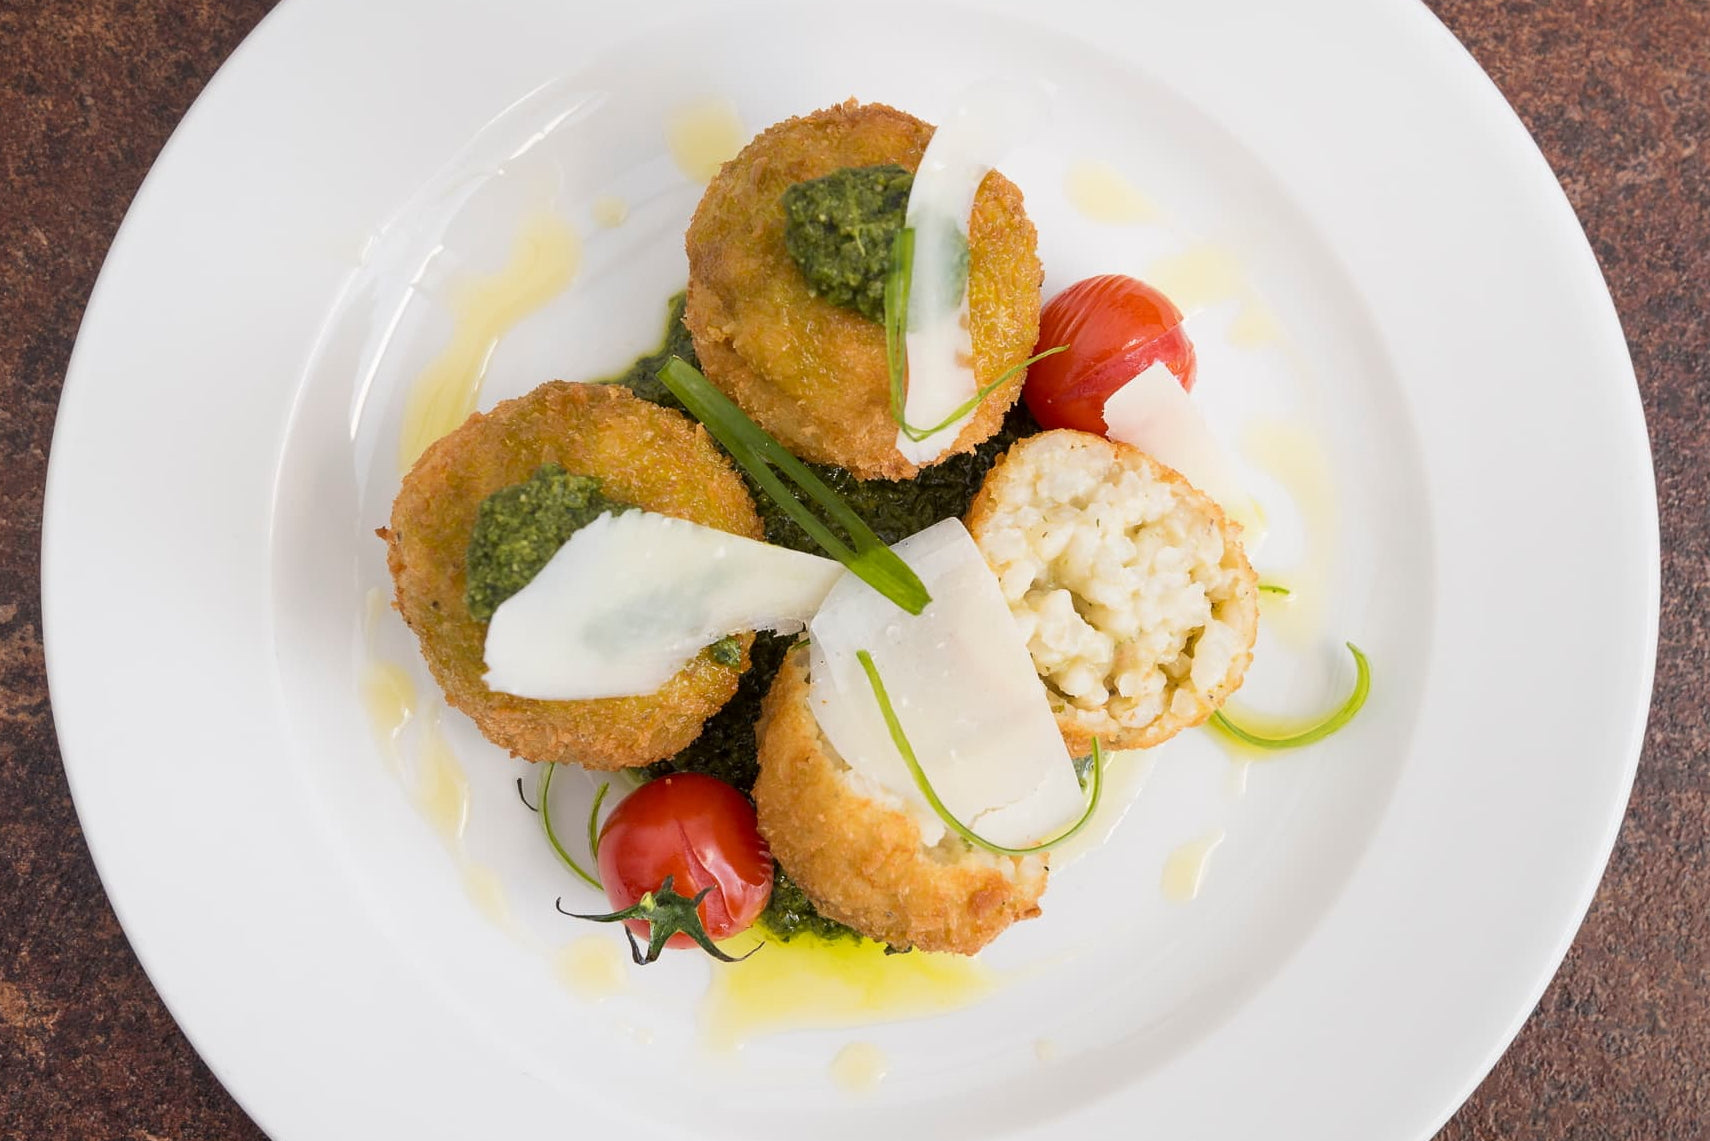 Sun-dried tomato & parmesan arancini – rocket pesto for one or two to share